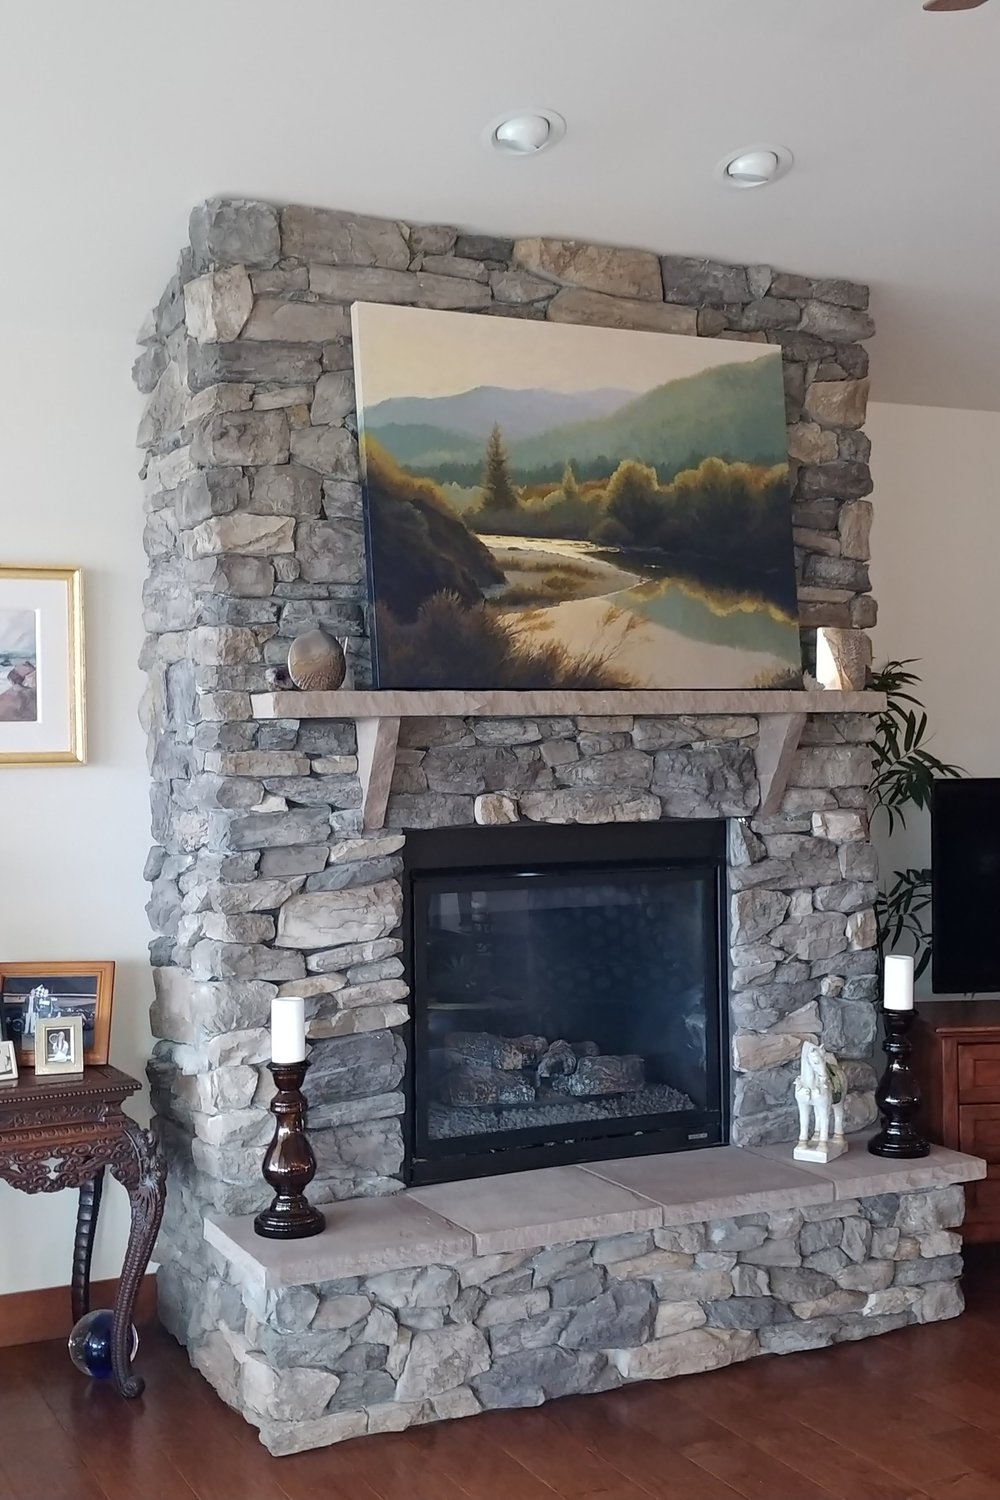 Local Stone Face, Stone Mantle & Raised Hearth with Gas Fireplace